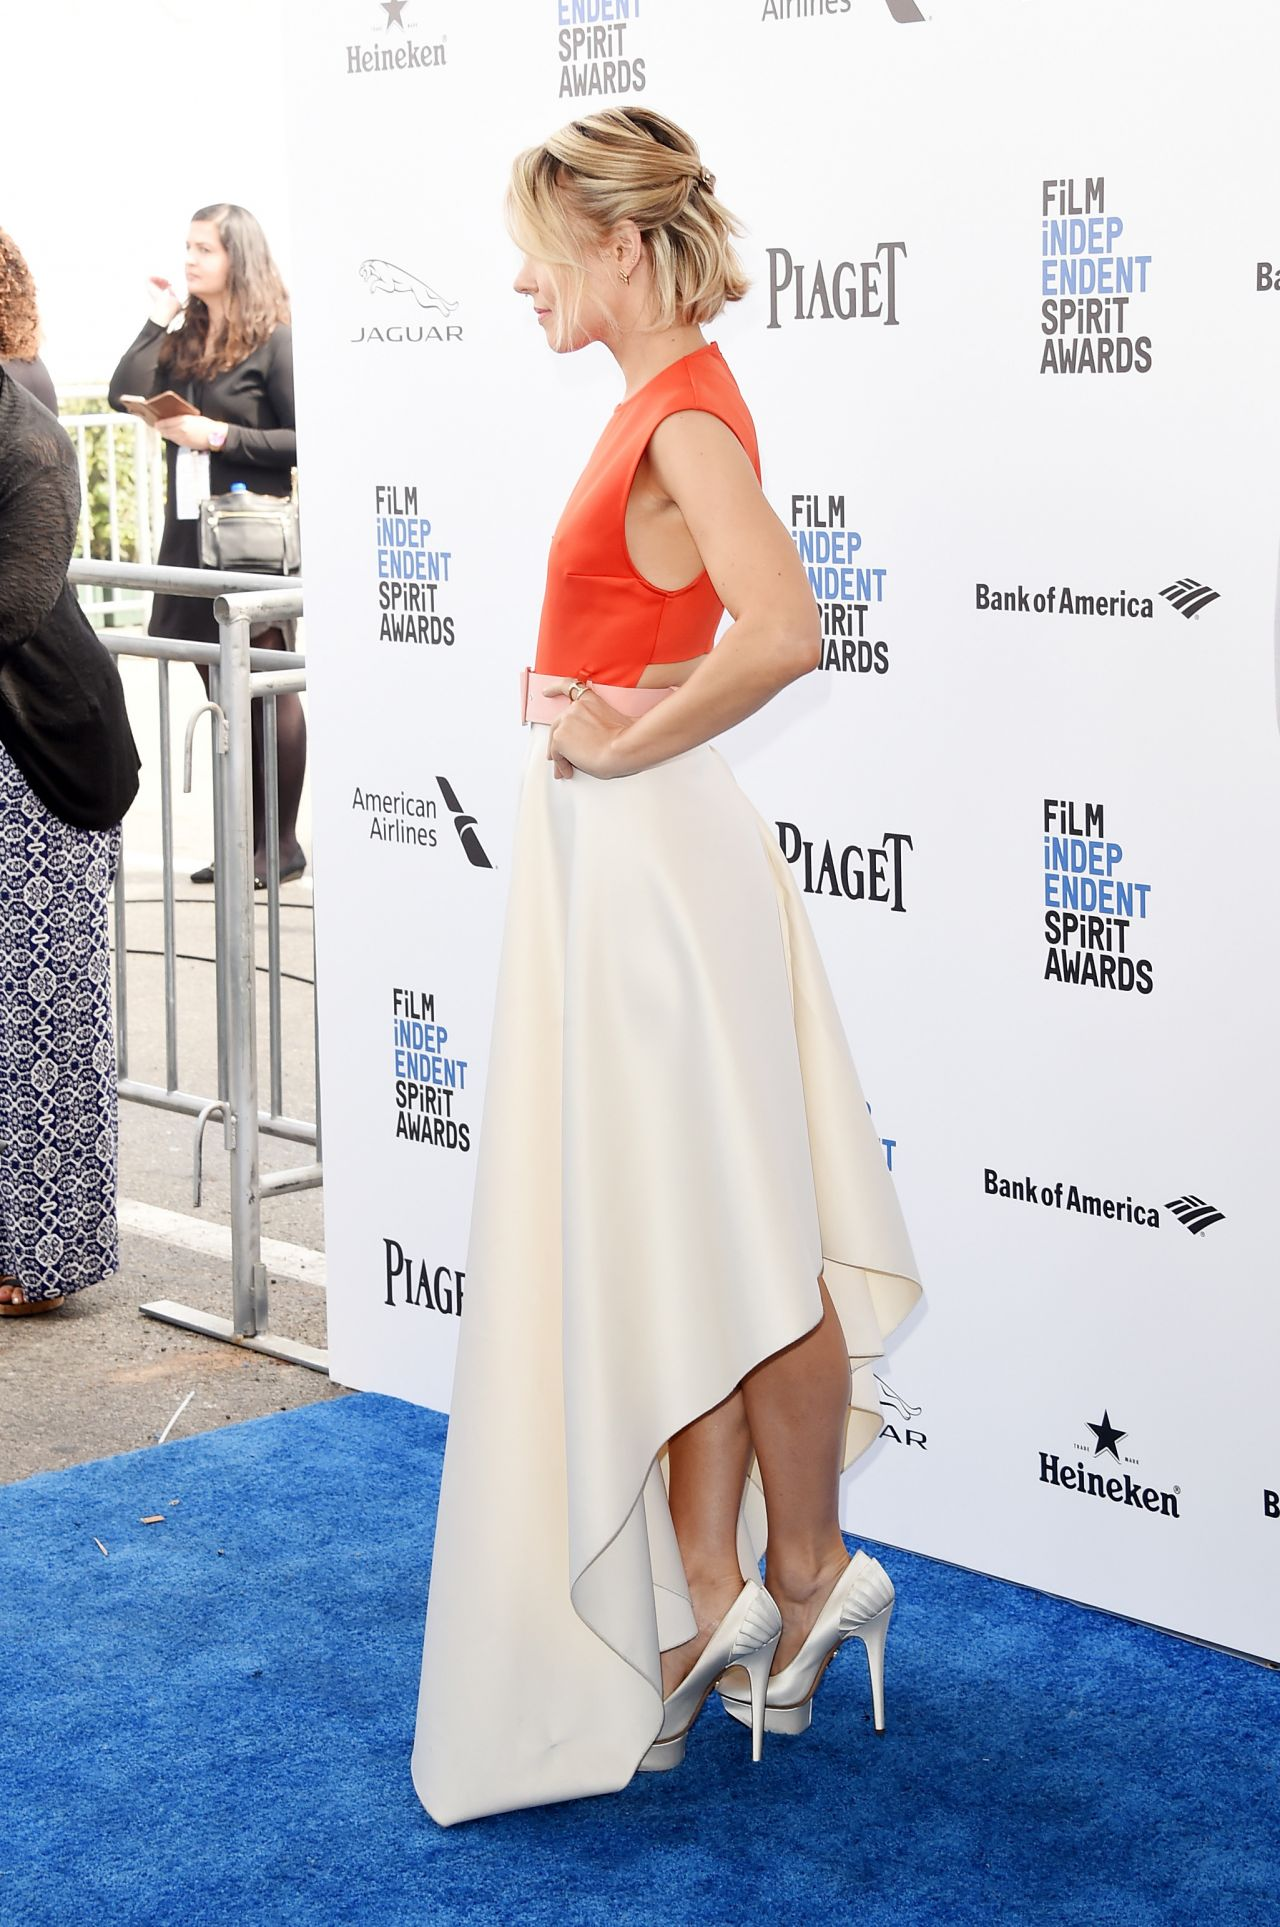 rachel-mcadams-2016-film-independent-spirit-awards-in-santa-monica-ca-6